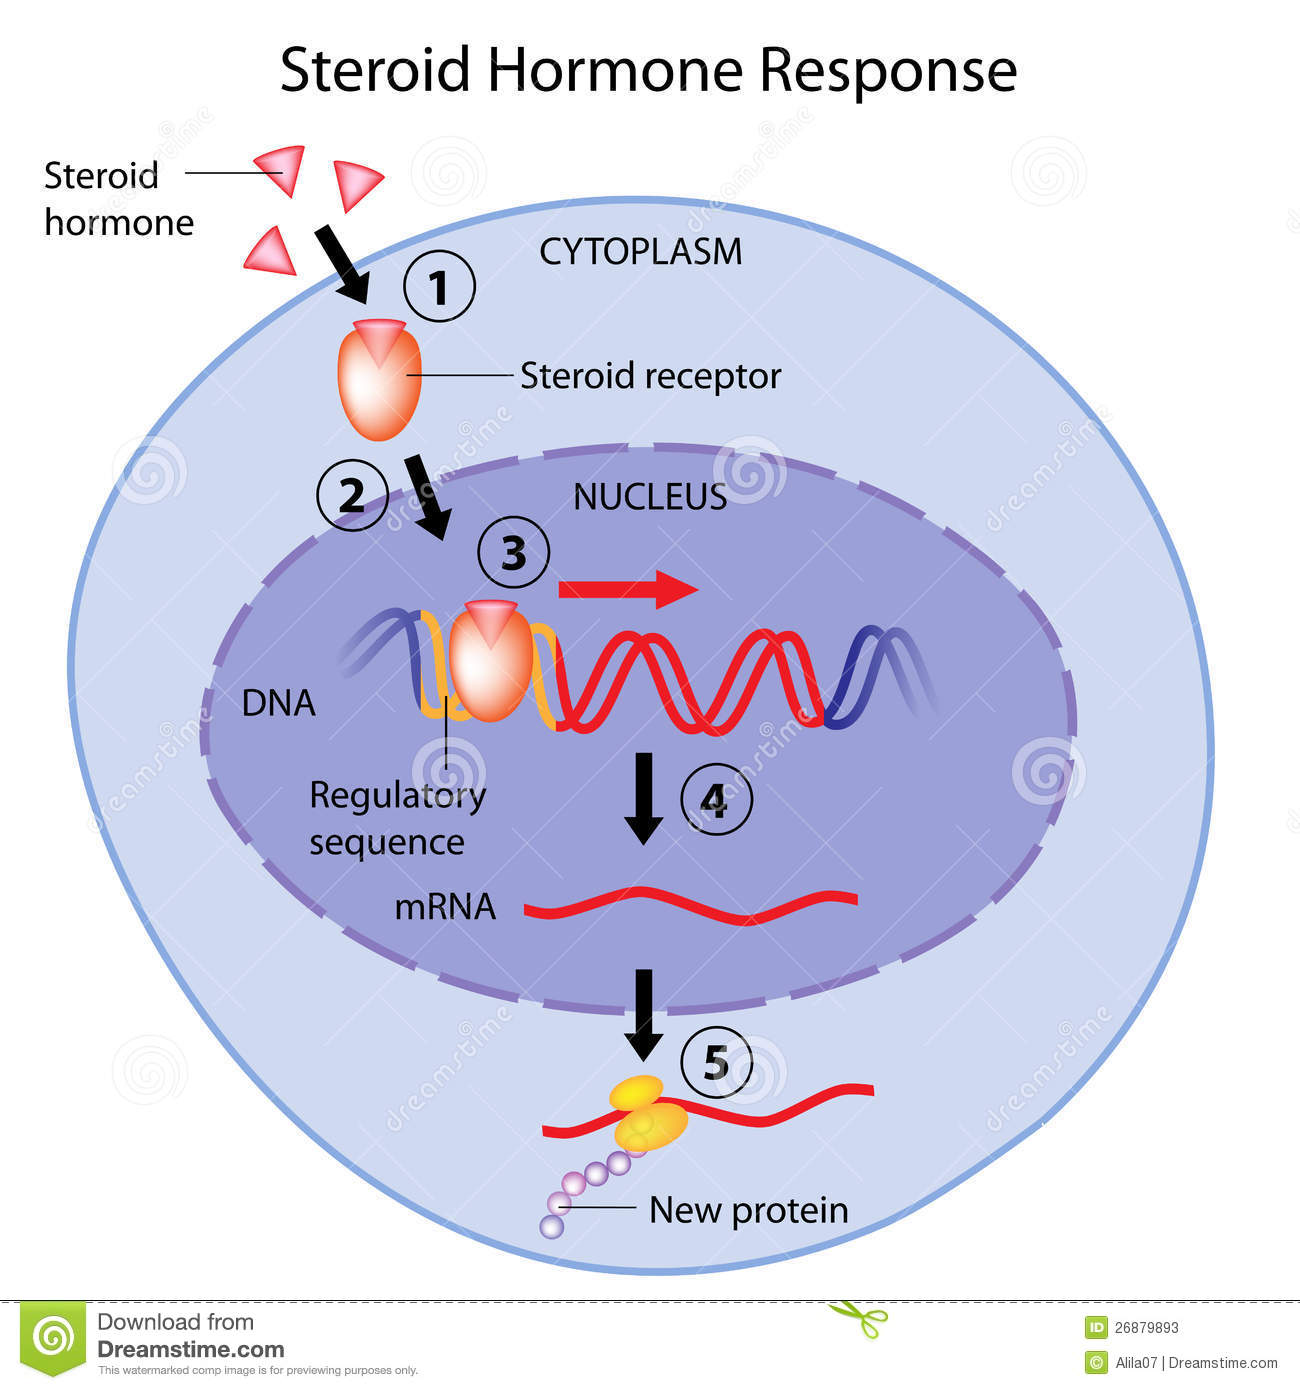 More similar stock images of ` Steroid hormones action `